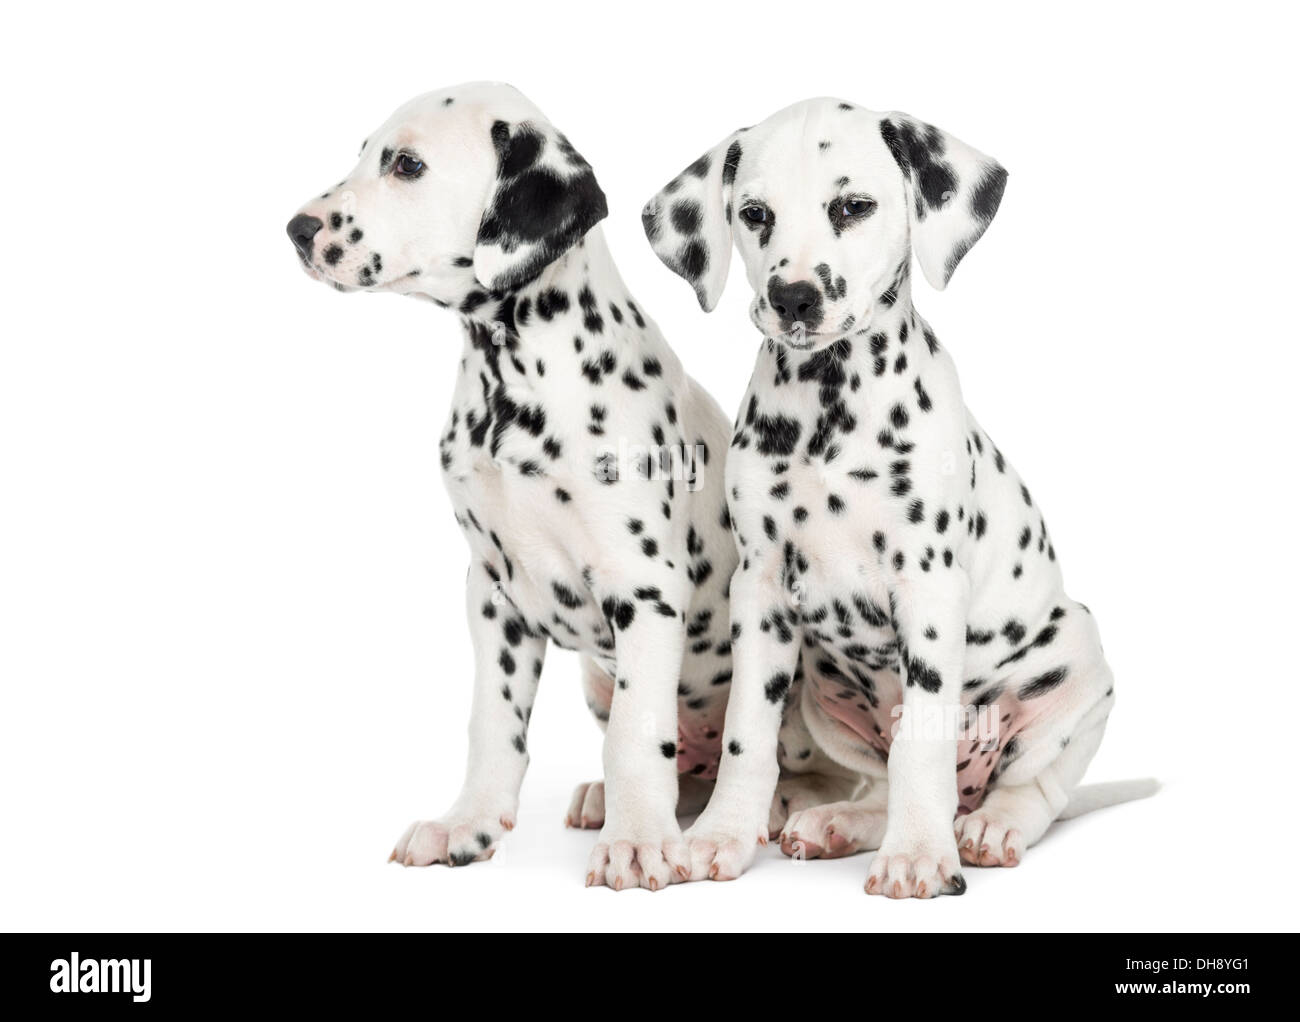 Two Dalmatian puppies, sitting next to each other against white background - Stock Image